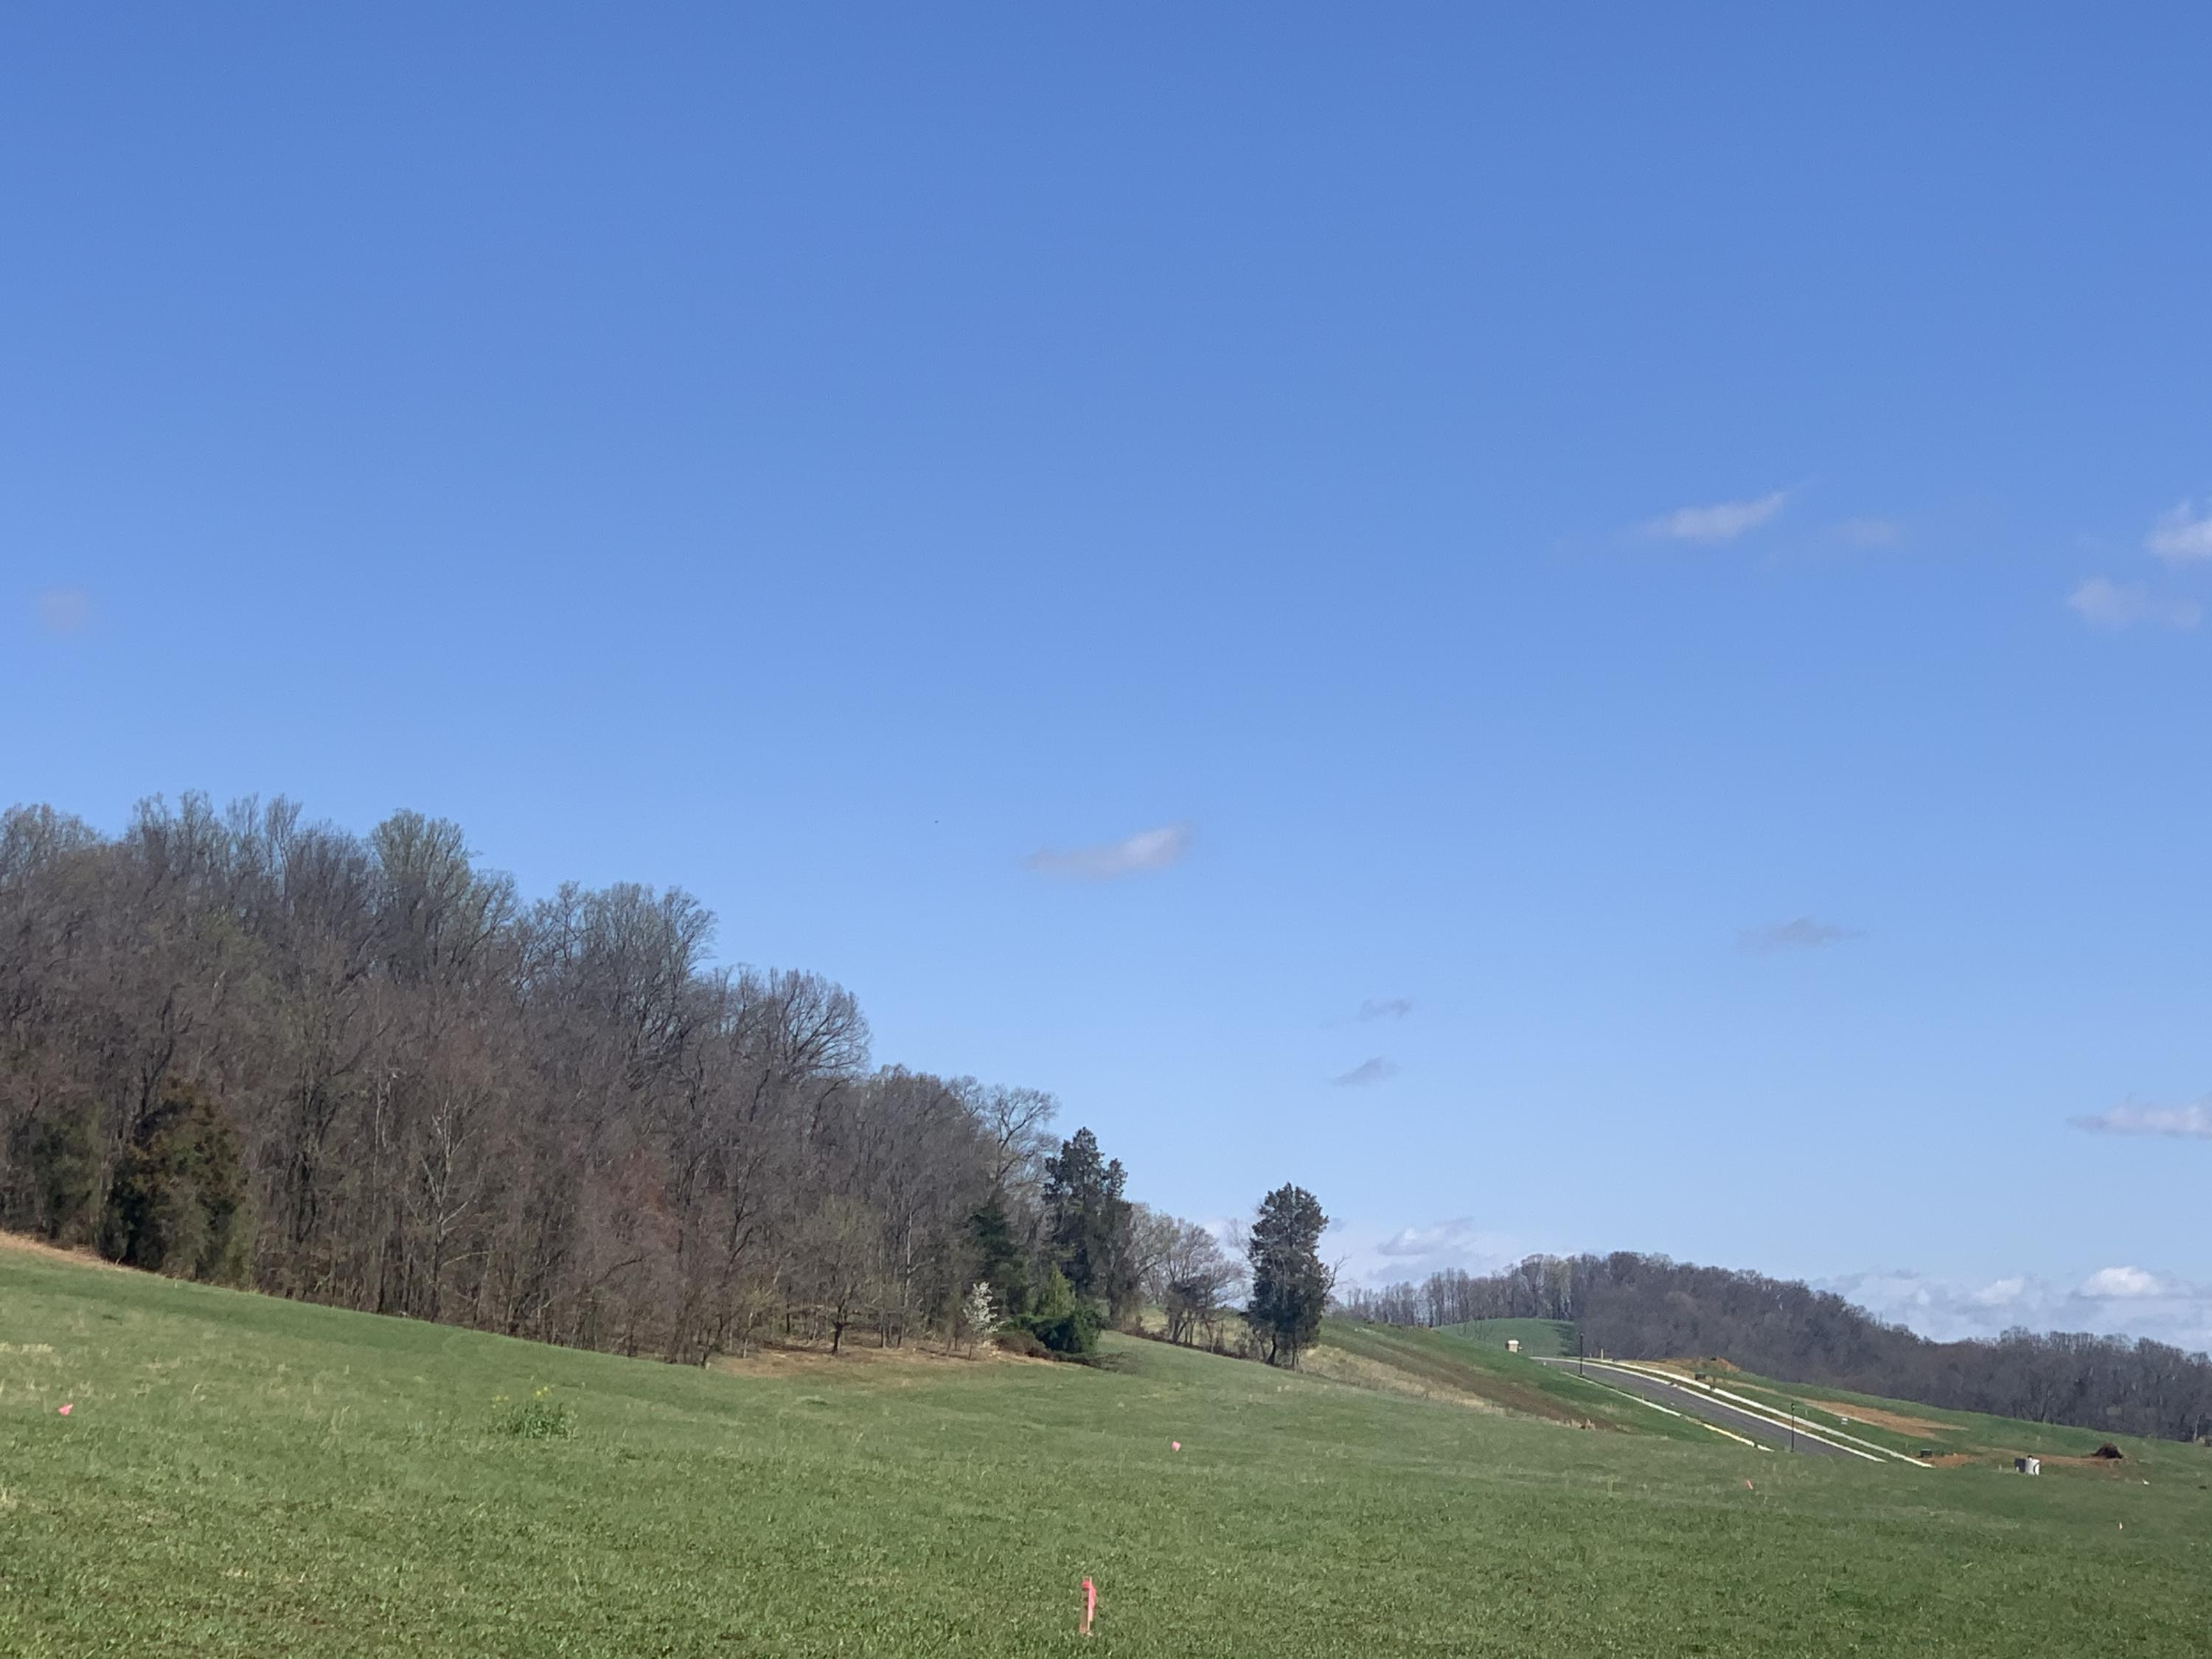 Tbd Cove Drive, Johnson City, Tennessee 37615, ,Lots And Land,For Sale,Tbd Cove Drive,9920261